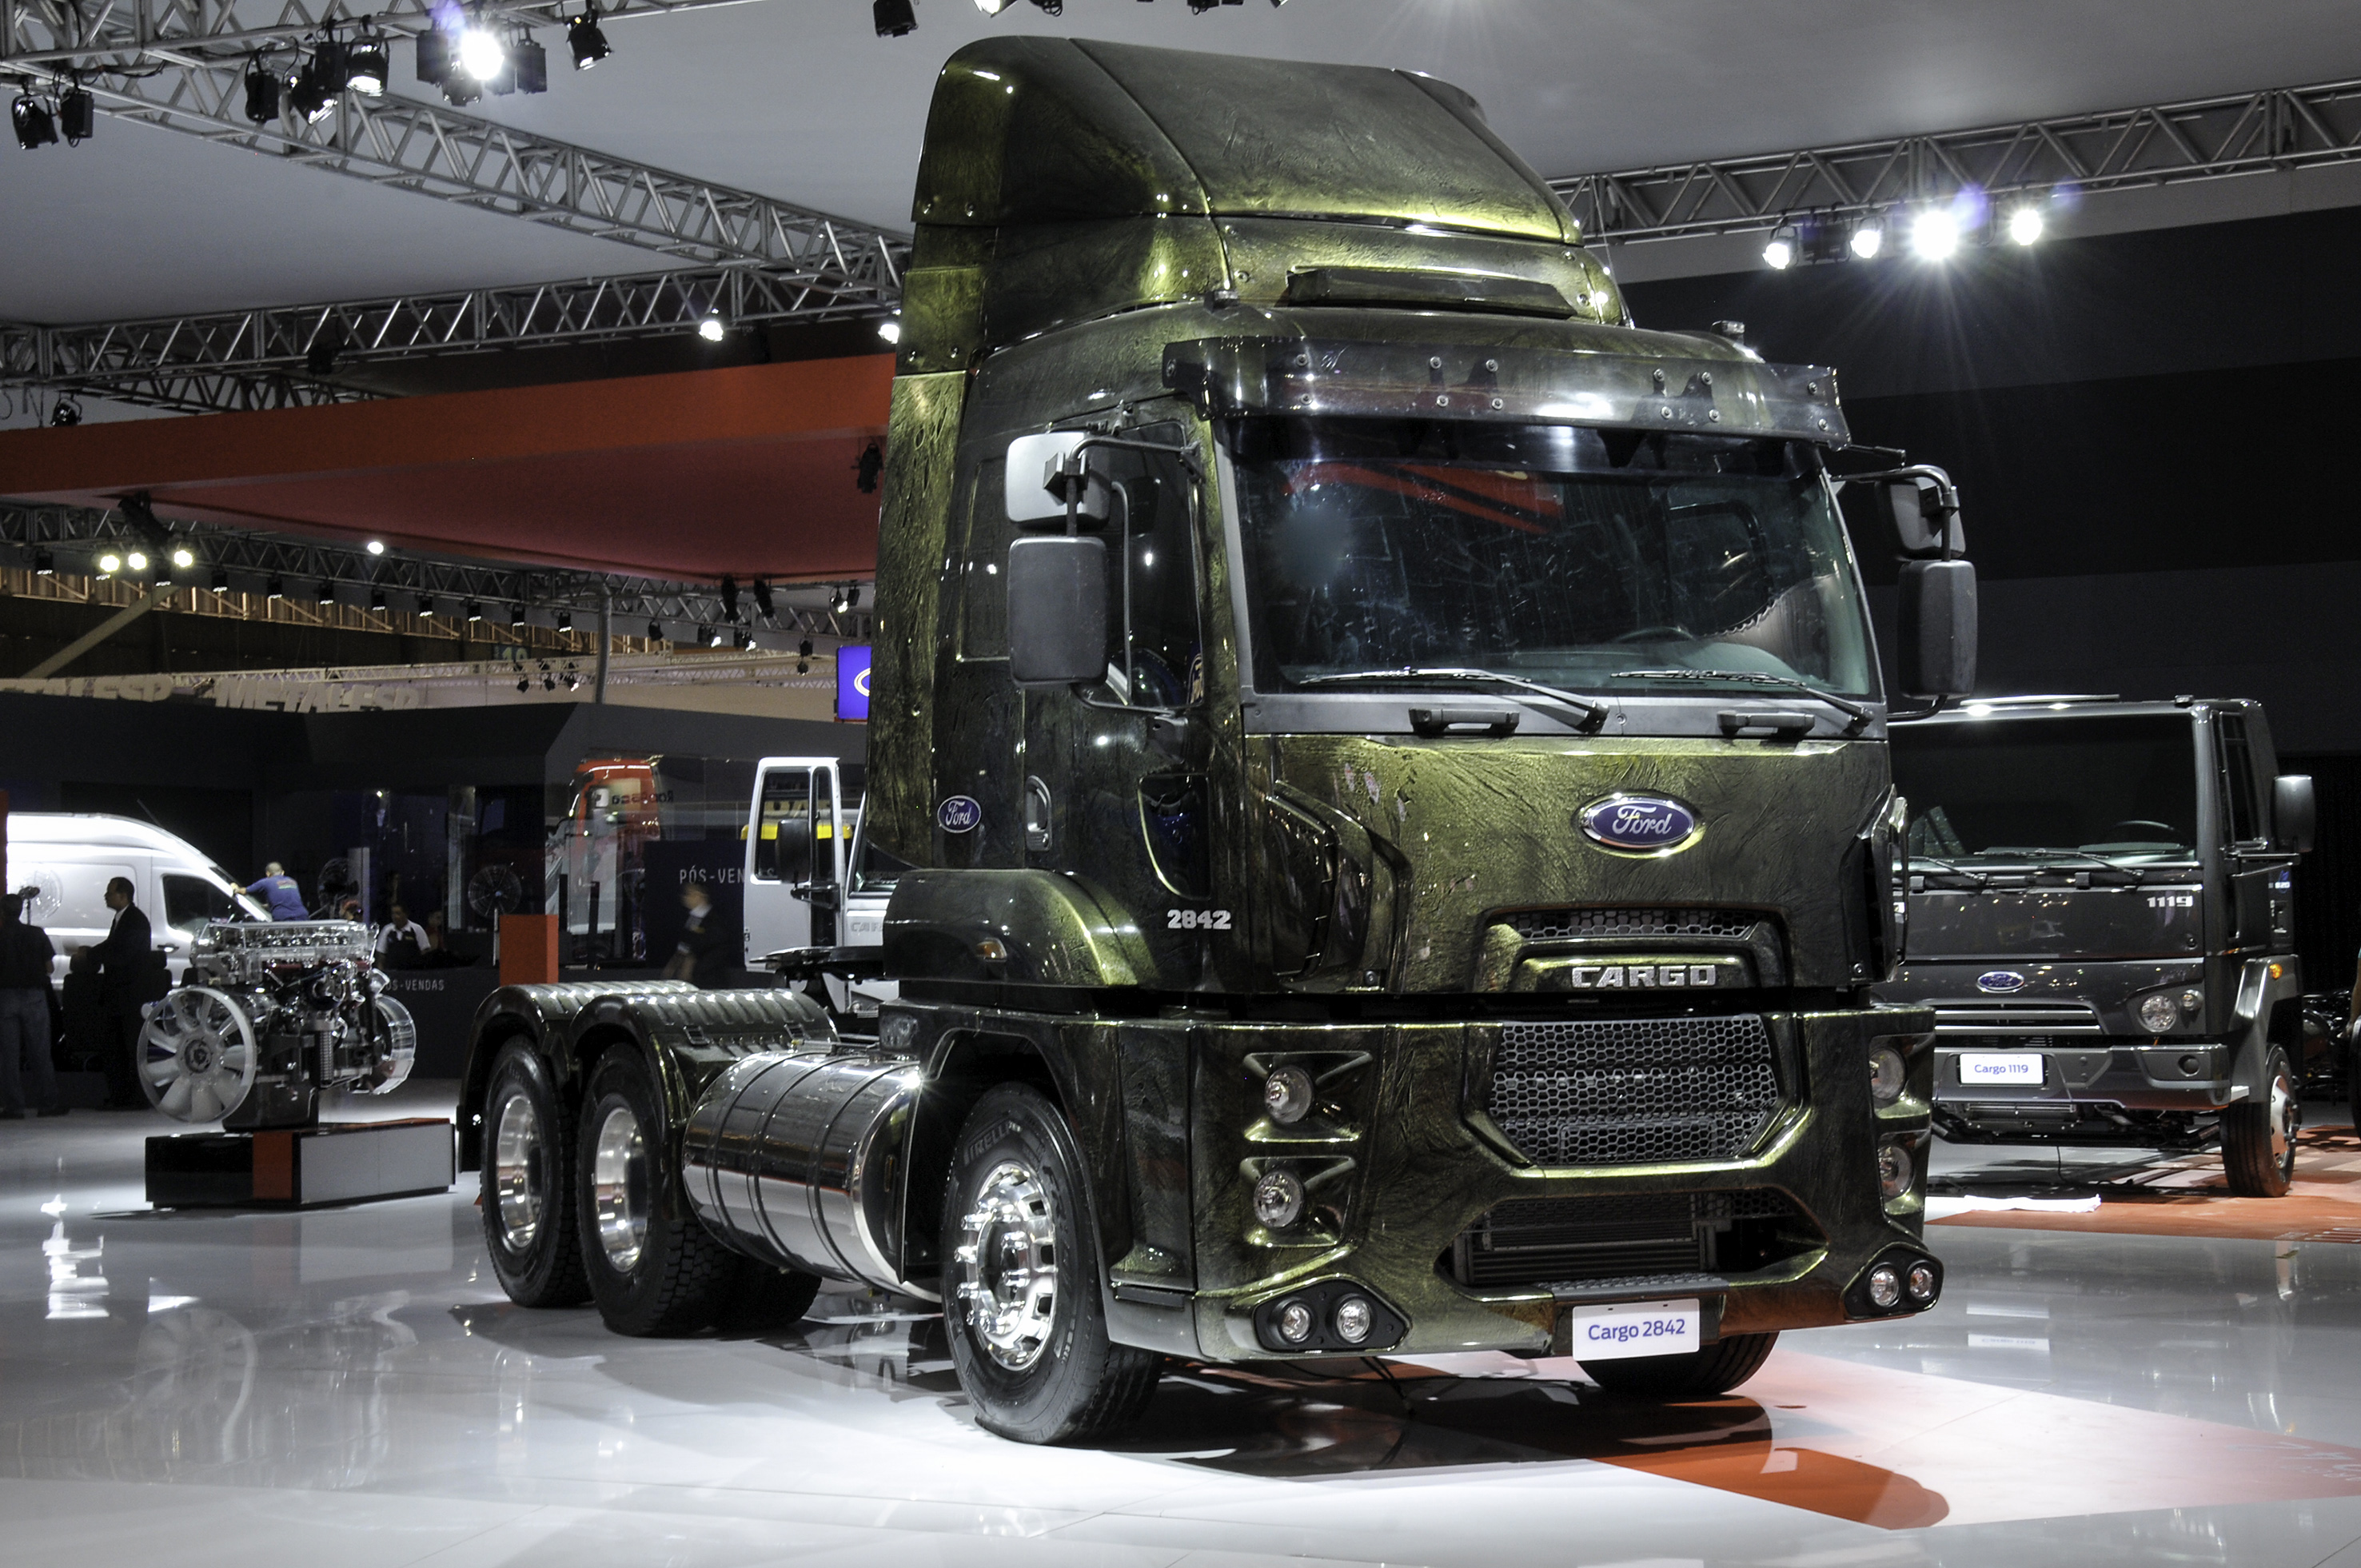 ford south america trucks with Ford Desenvolve Show Truck T Rex Para Exposicao Em Feira No Para on 4x4 Bus Conversions likewise Ford Desenvolve Show Truck T Rex Para Exposicao Em Feira No Para likewise F1231201410 K moreover Vw Amarok Volkswagen Pick Up  es To Uk In 2011 likewise Fichier 2001 2003 Ford Ranger.